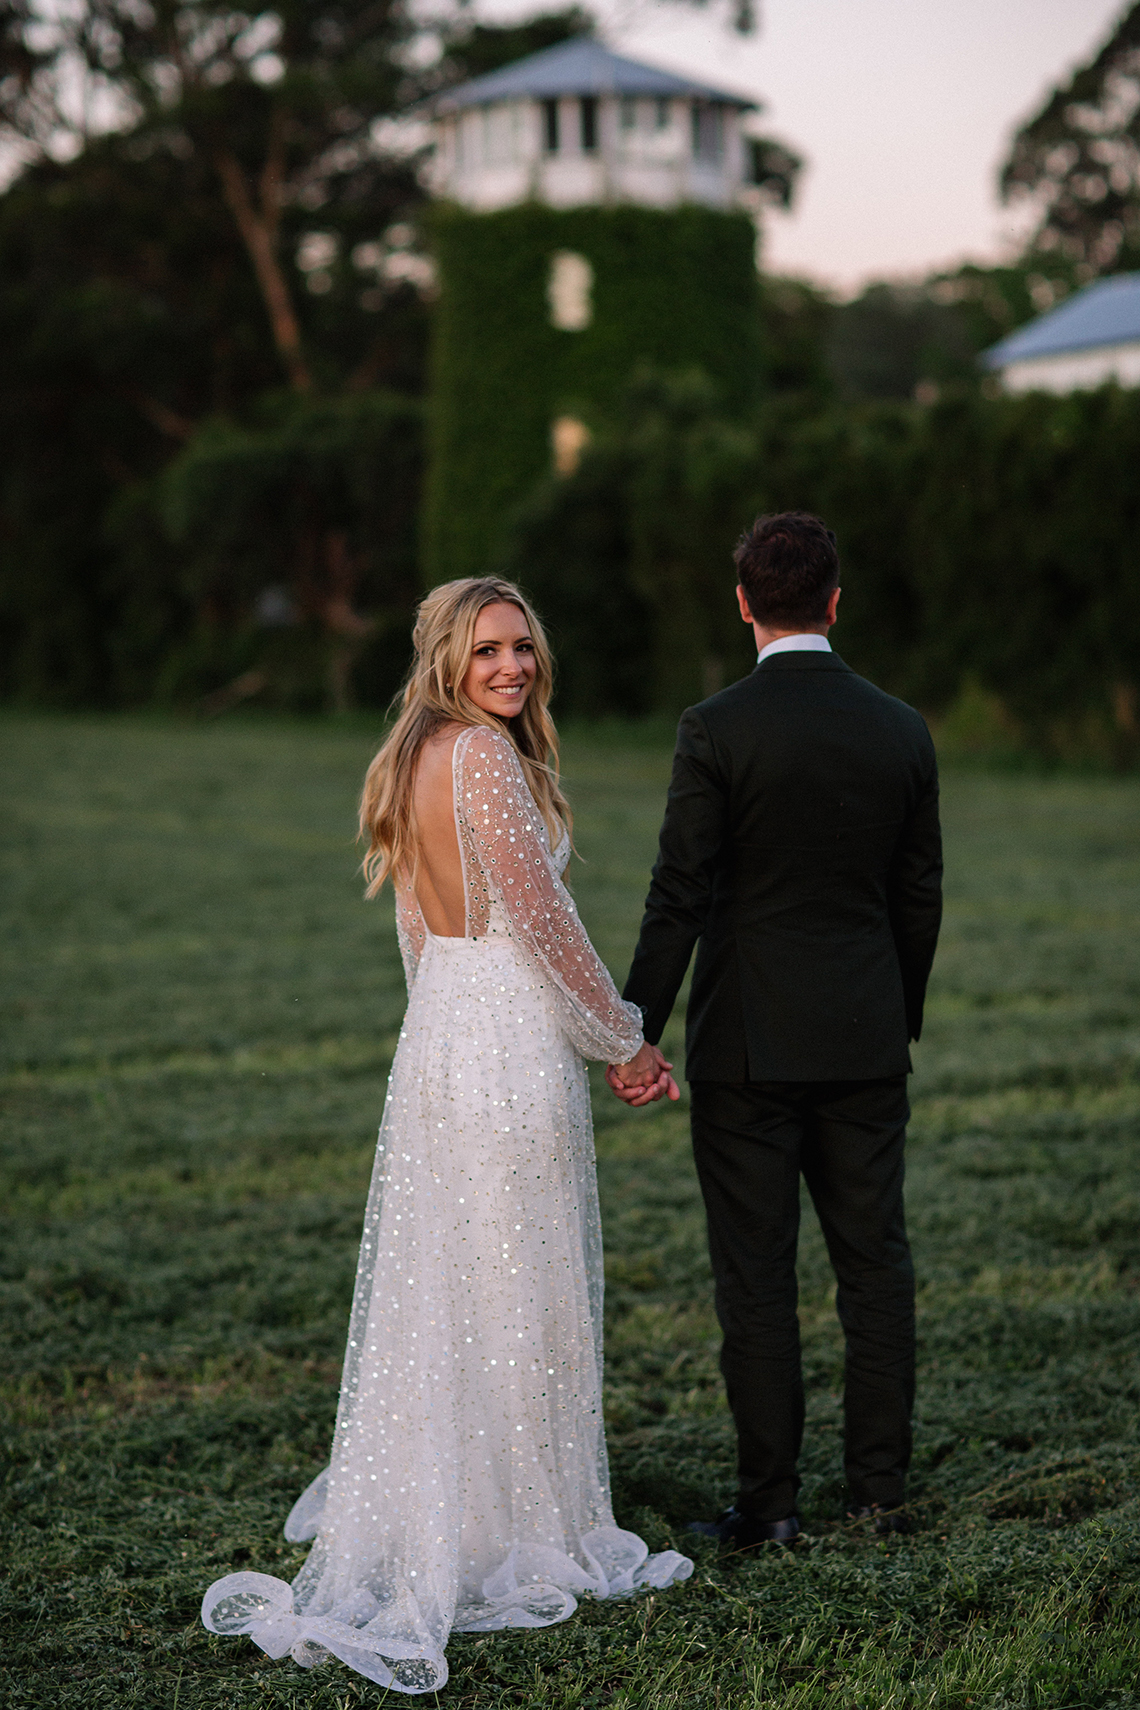 Chic Australian Garden Wedding with A Sparkling Wedding Dress – David Campbell Imagery 21